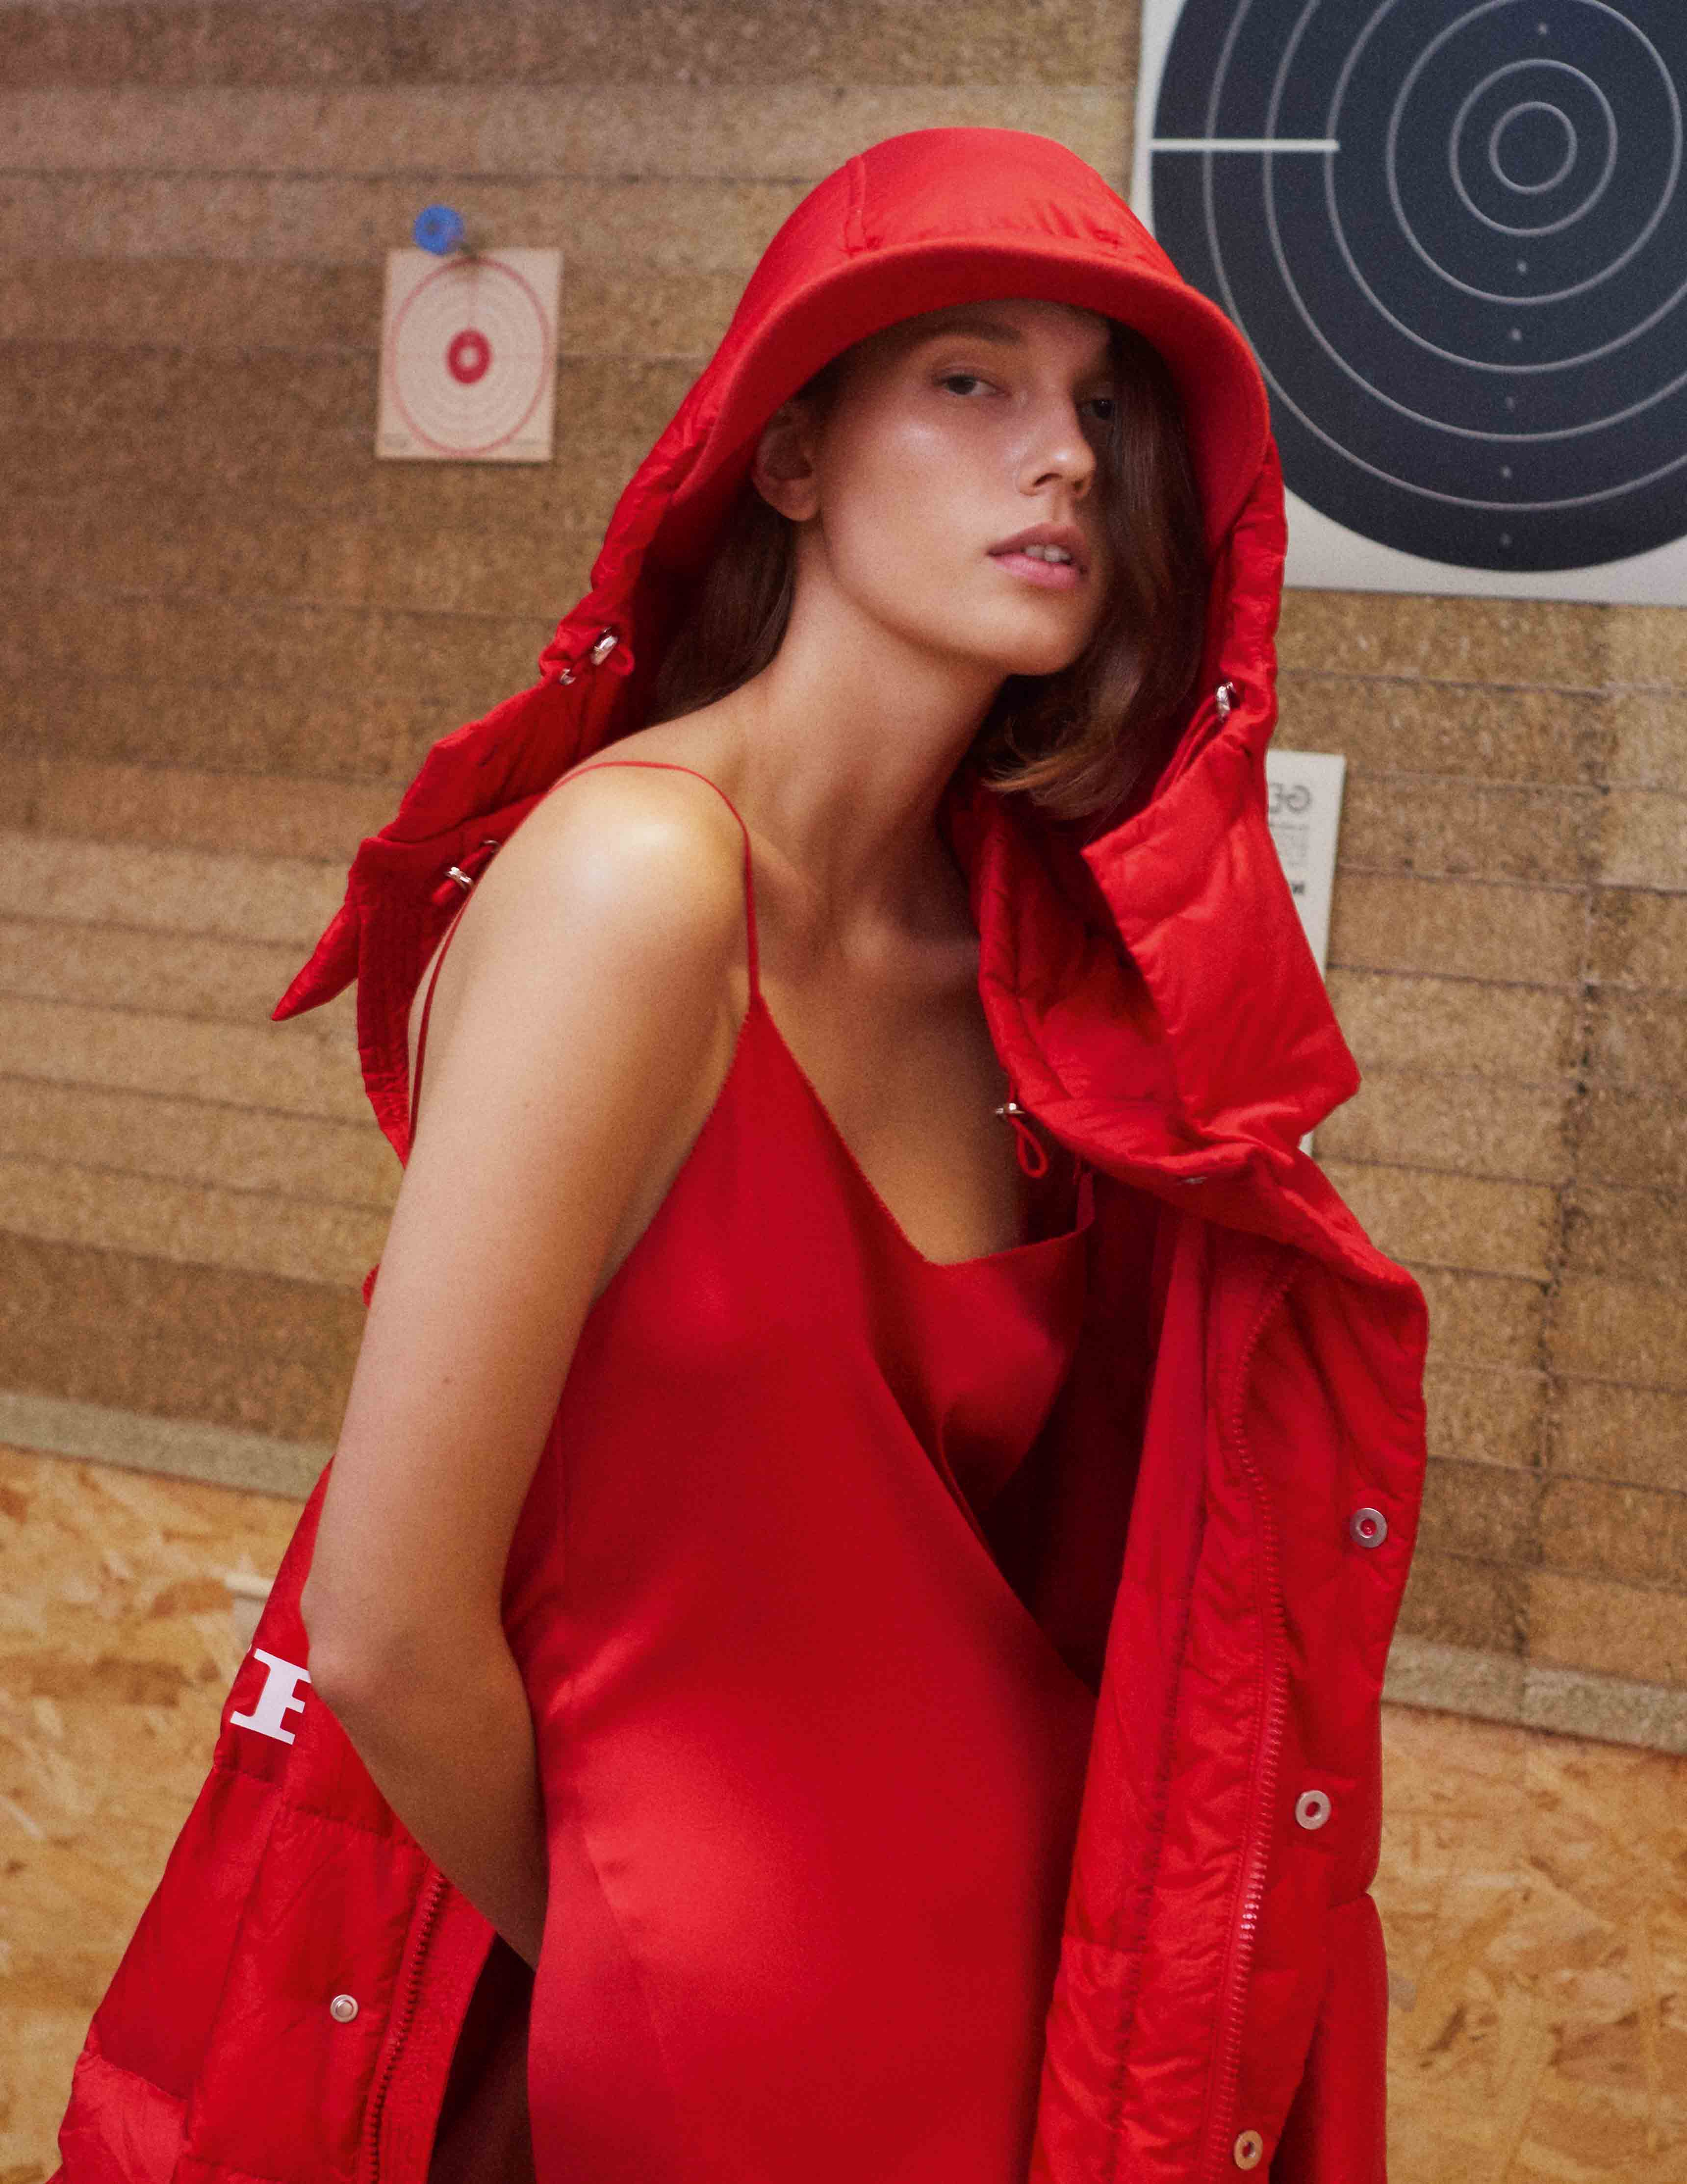 Bomber jacket in technical material and satin silken dress, ERMANNO SCERVINO. Hat, ANTHONY PETO.